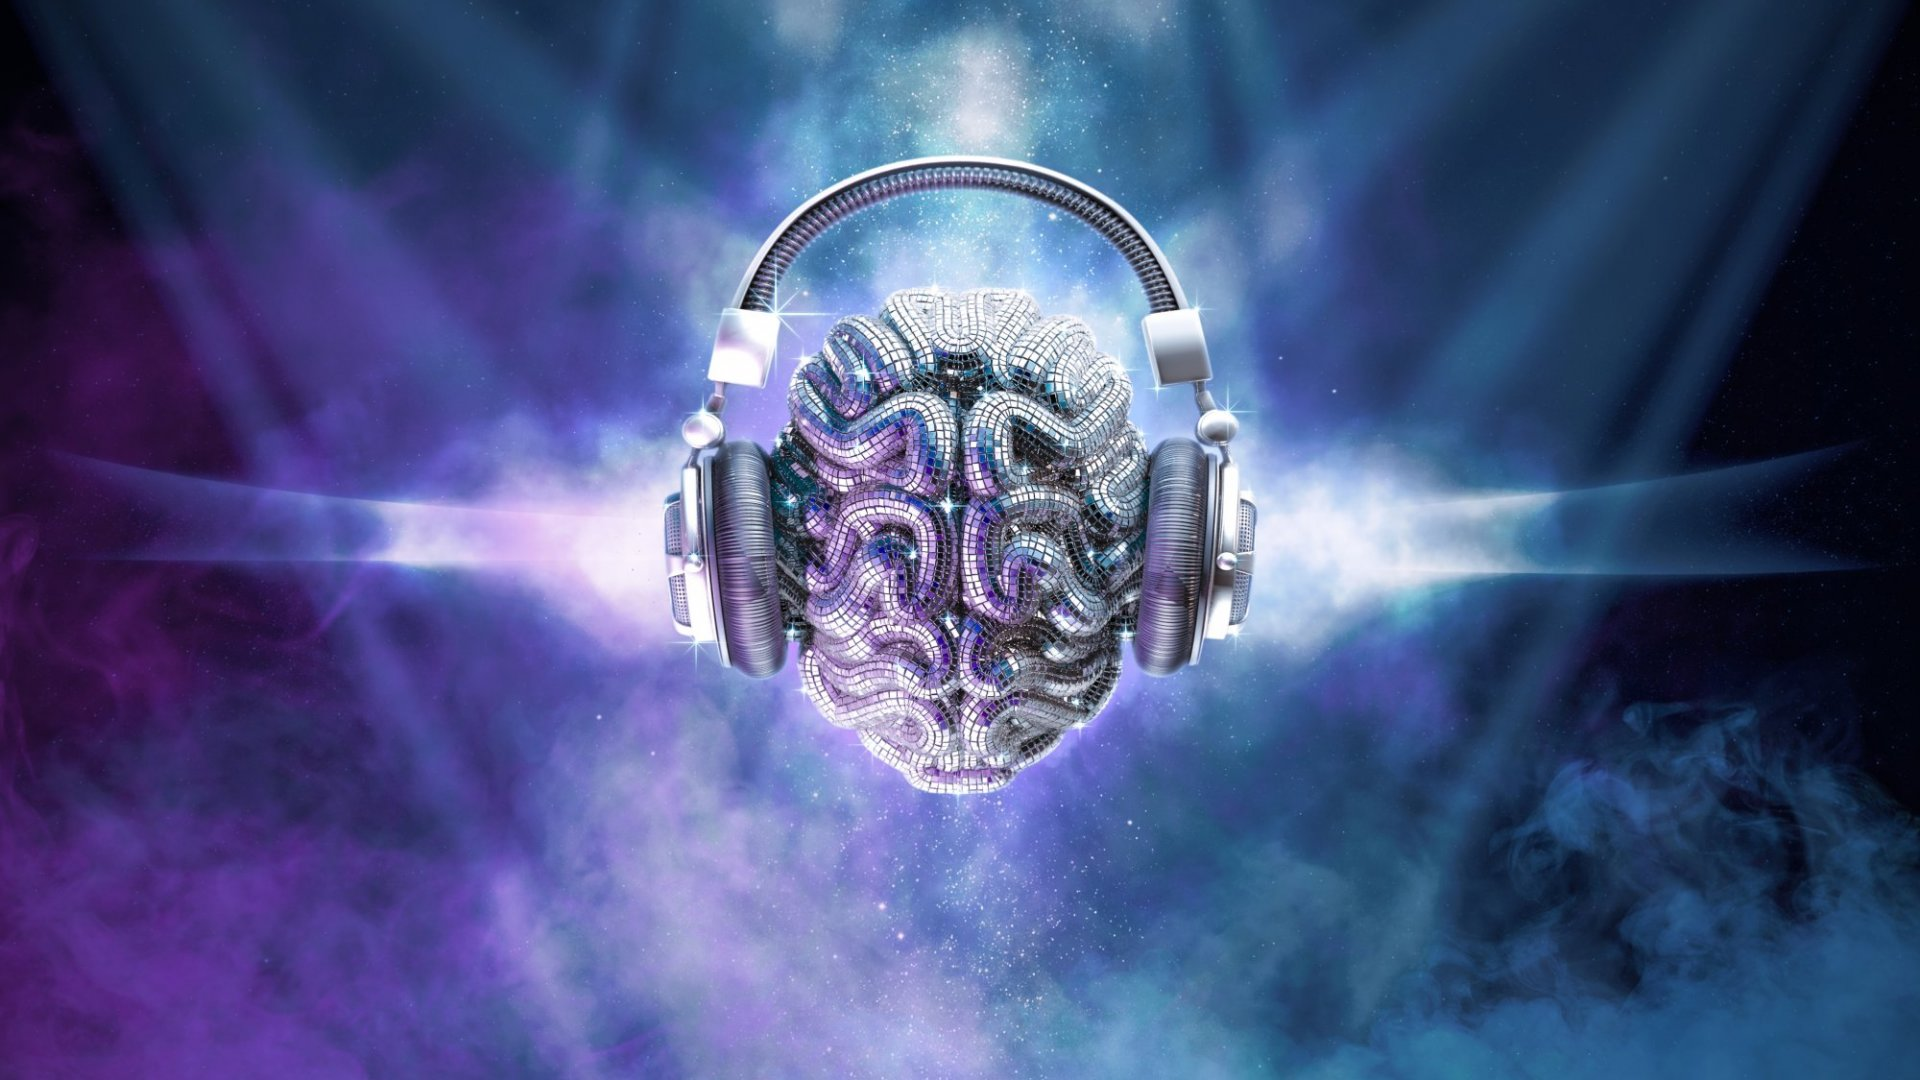 How to Make the Perfect Playlist to Boost Brain Power, According to Neuroscience